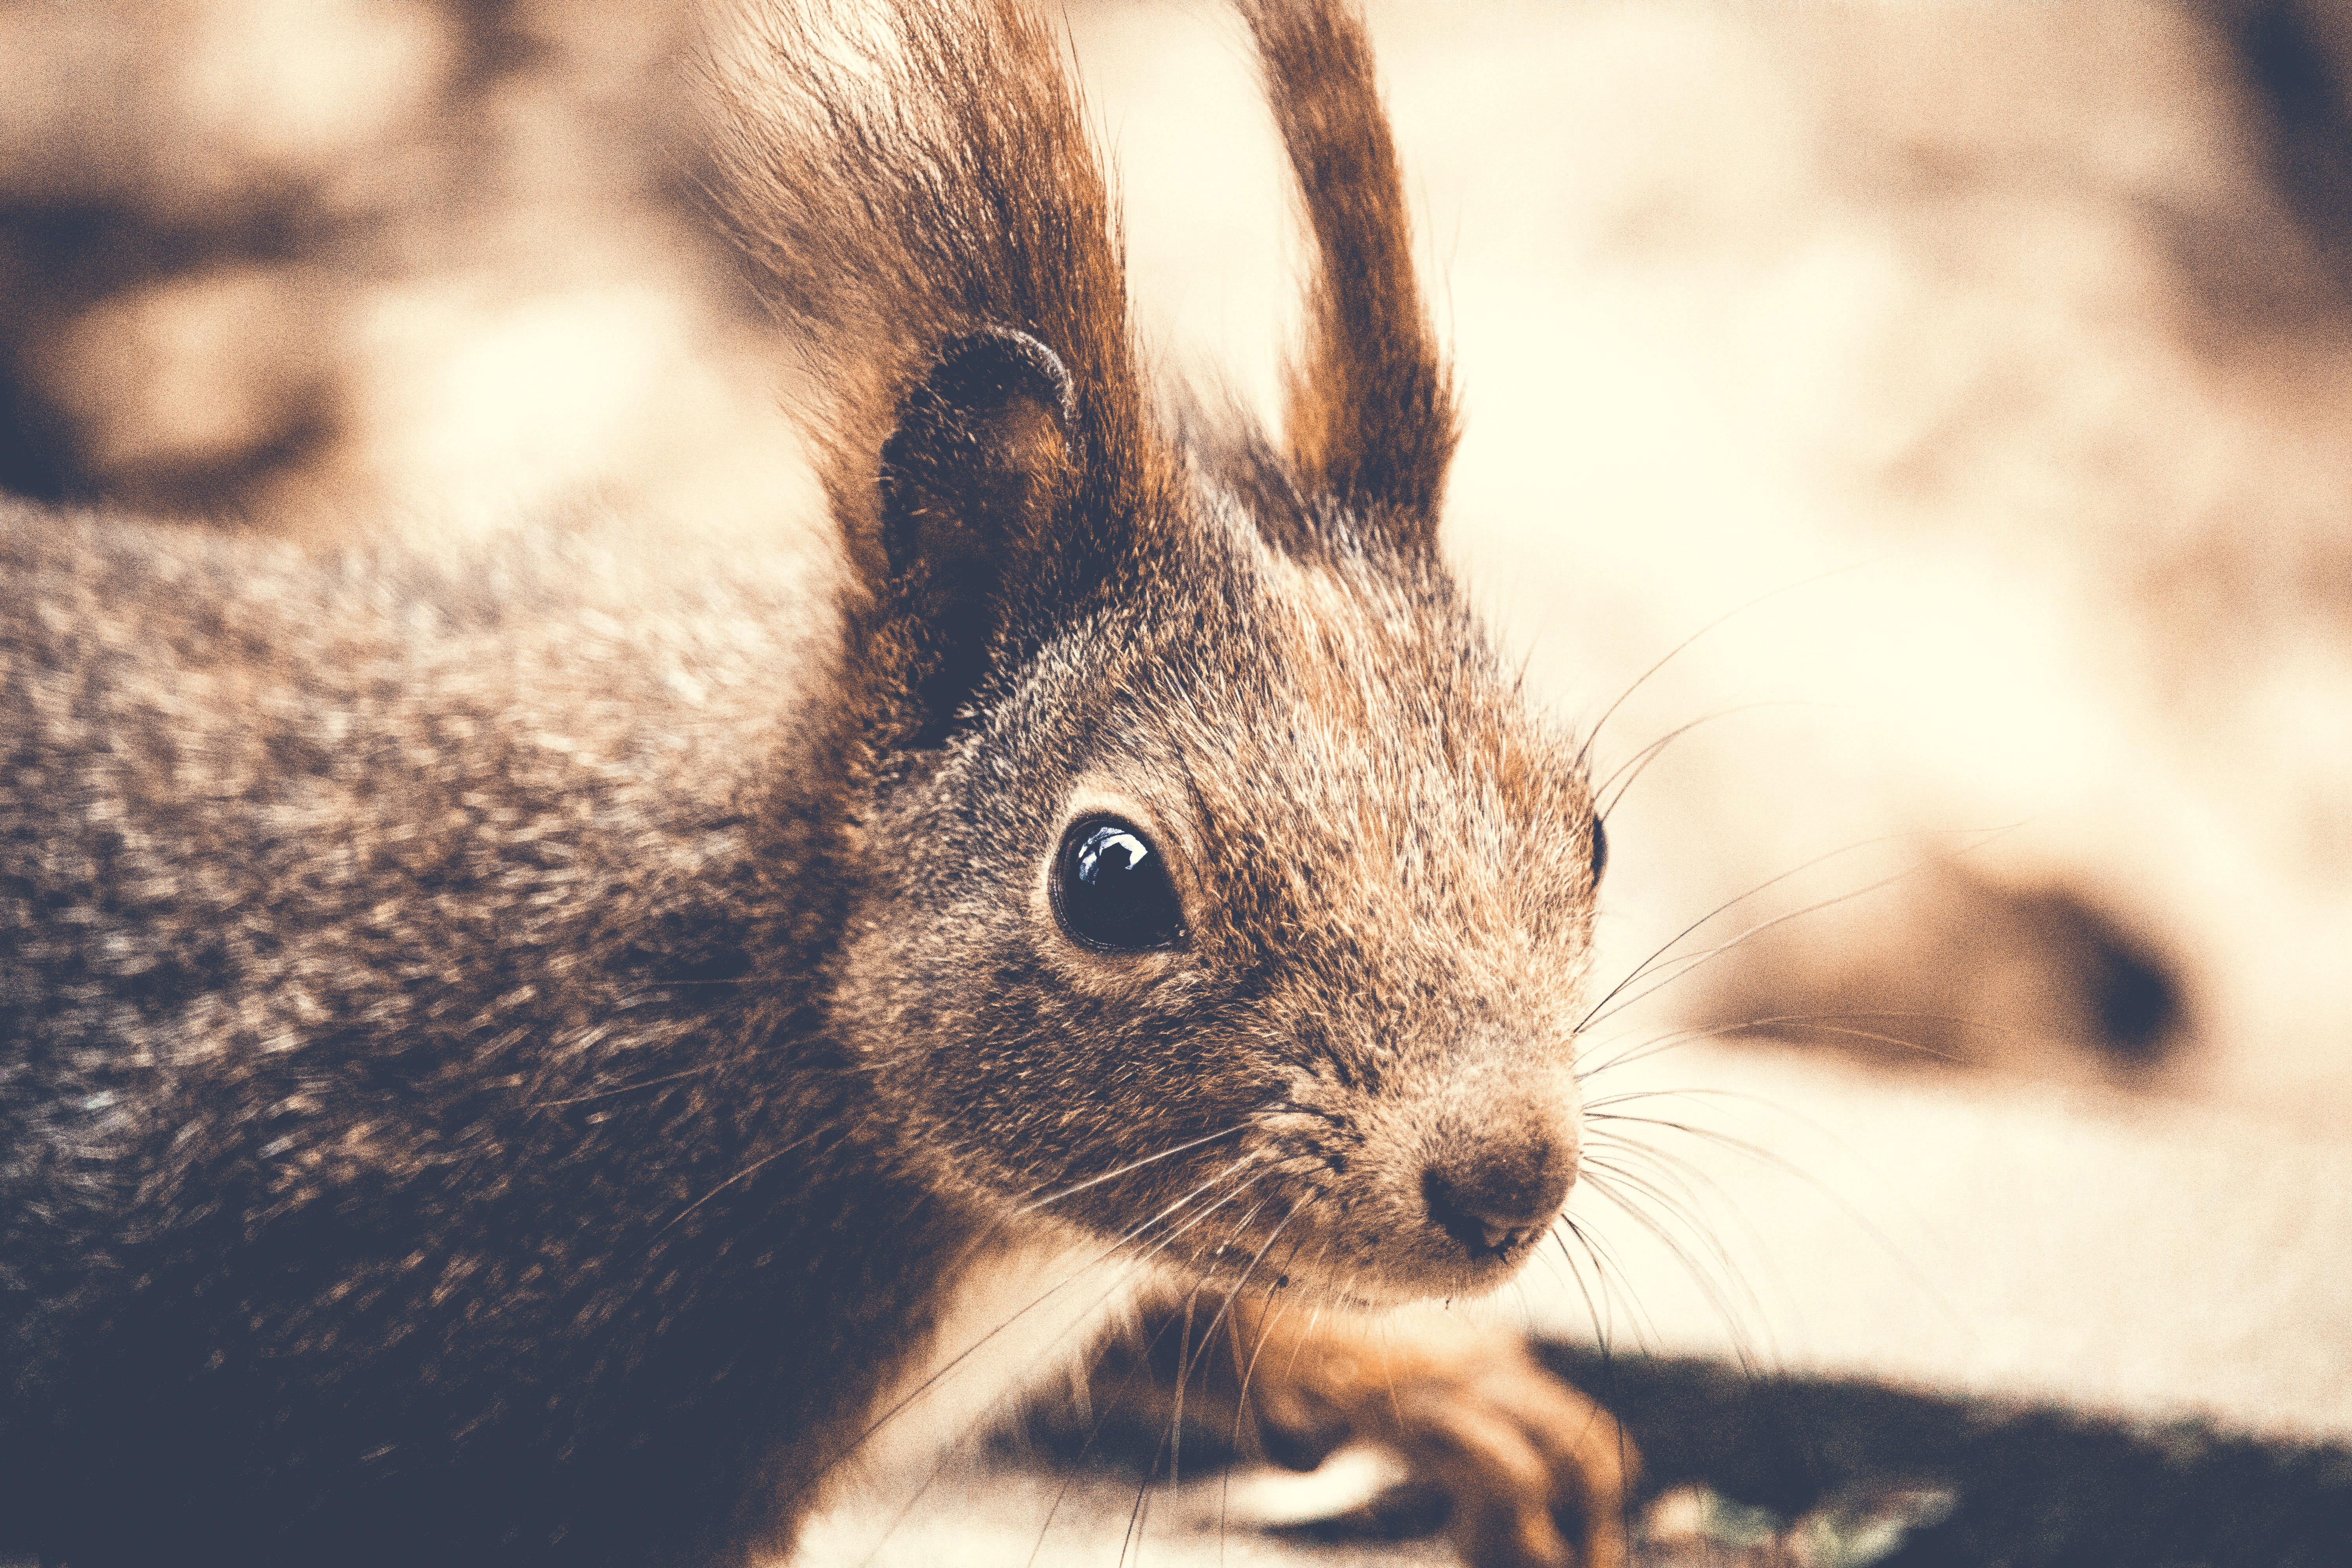 Closeup Photography of Rodent